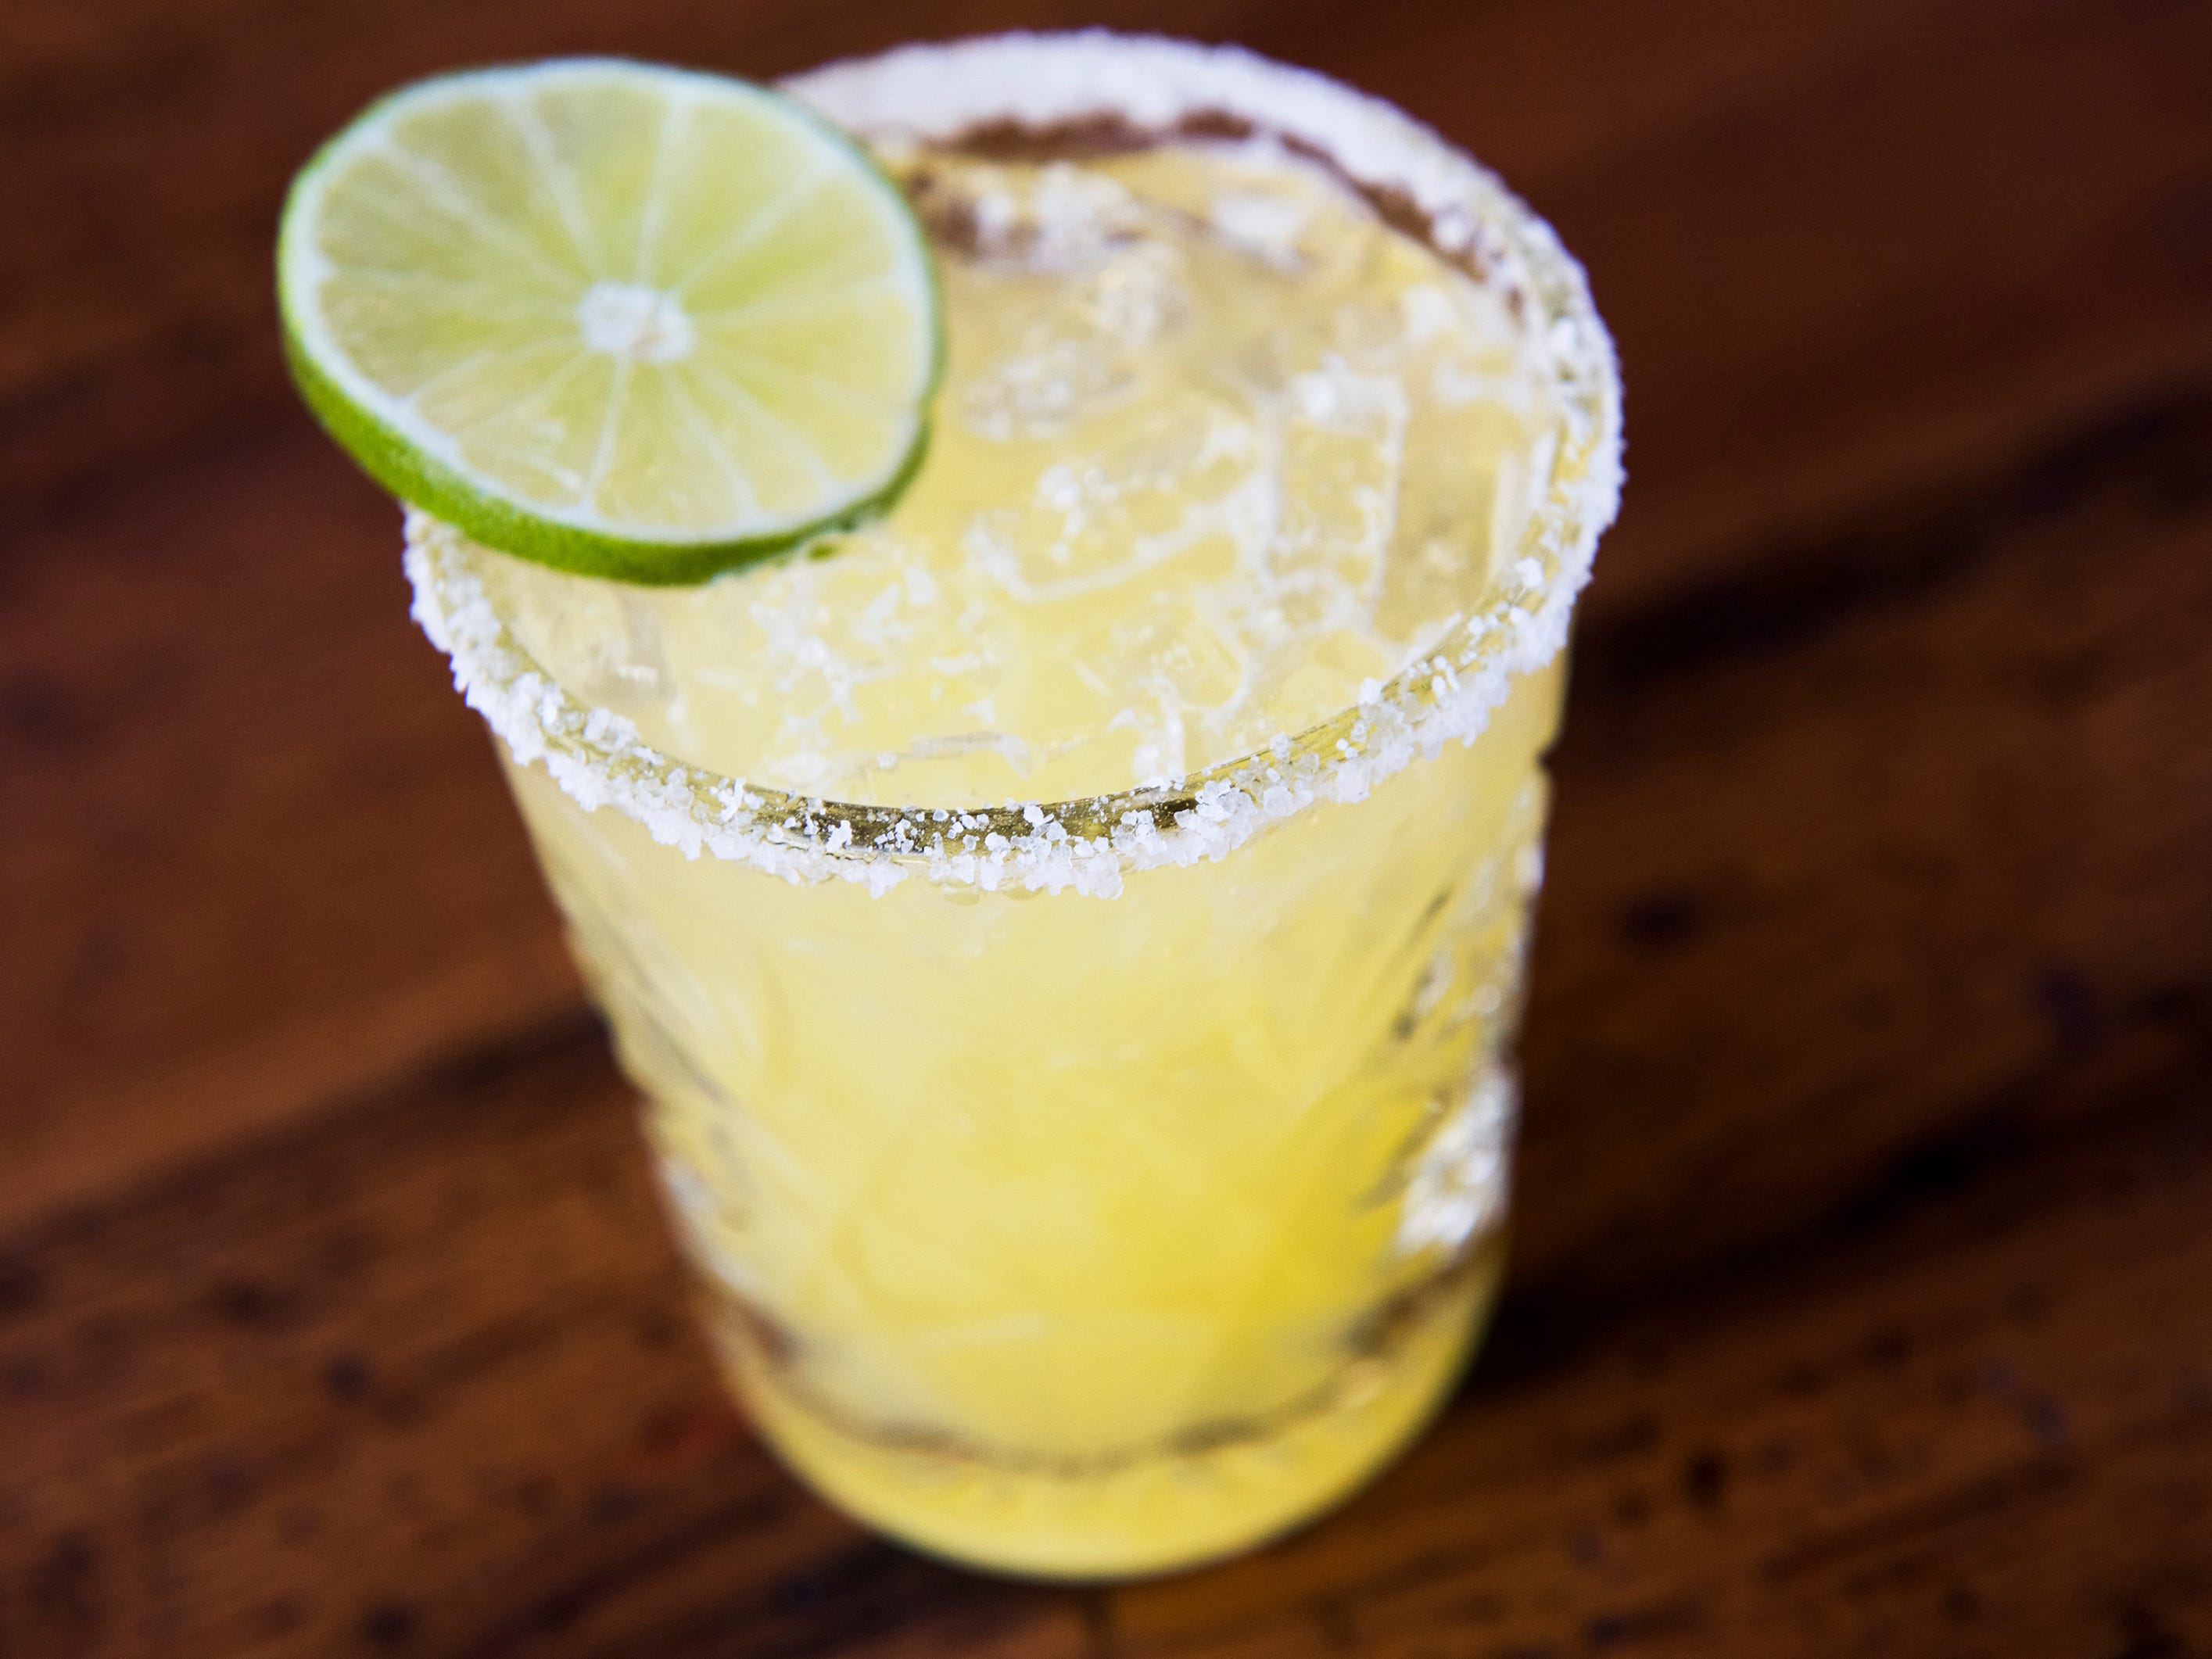 A Central margarita is displayed at Central Taco And Tequila in Westmont.